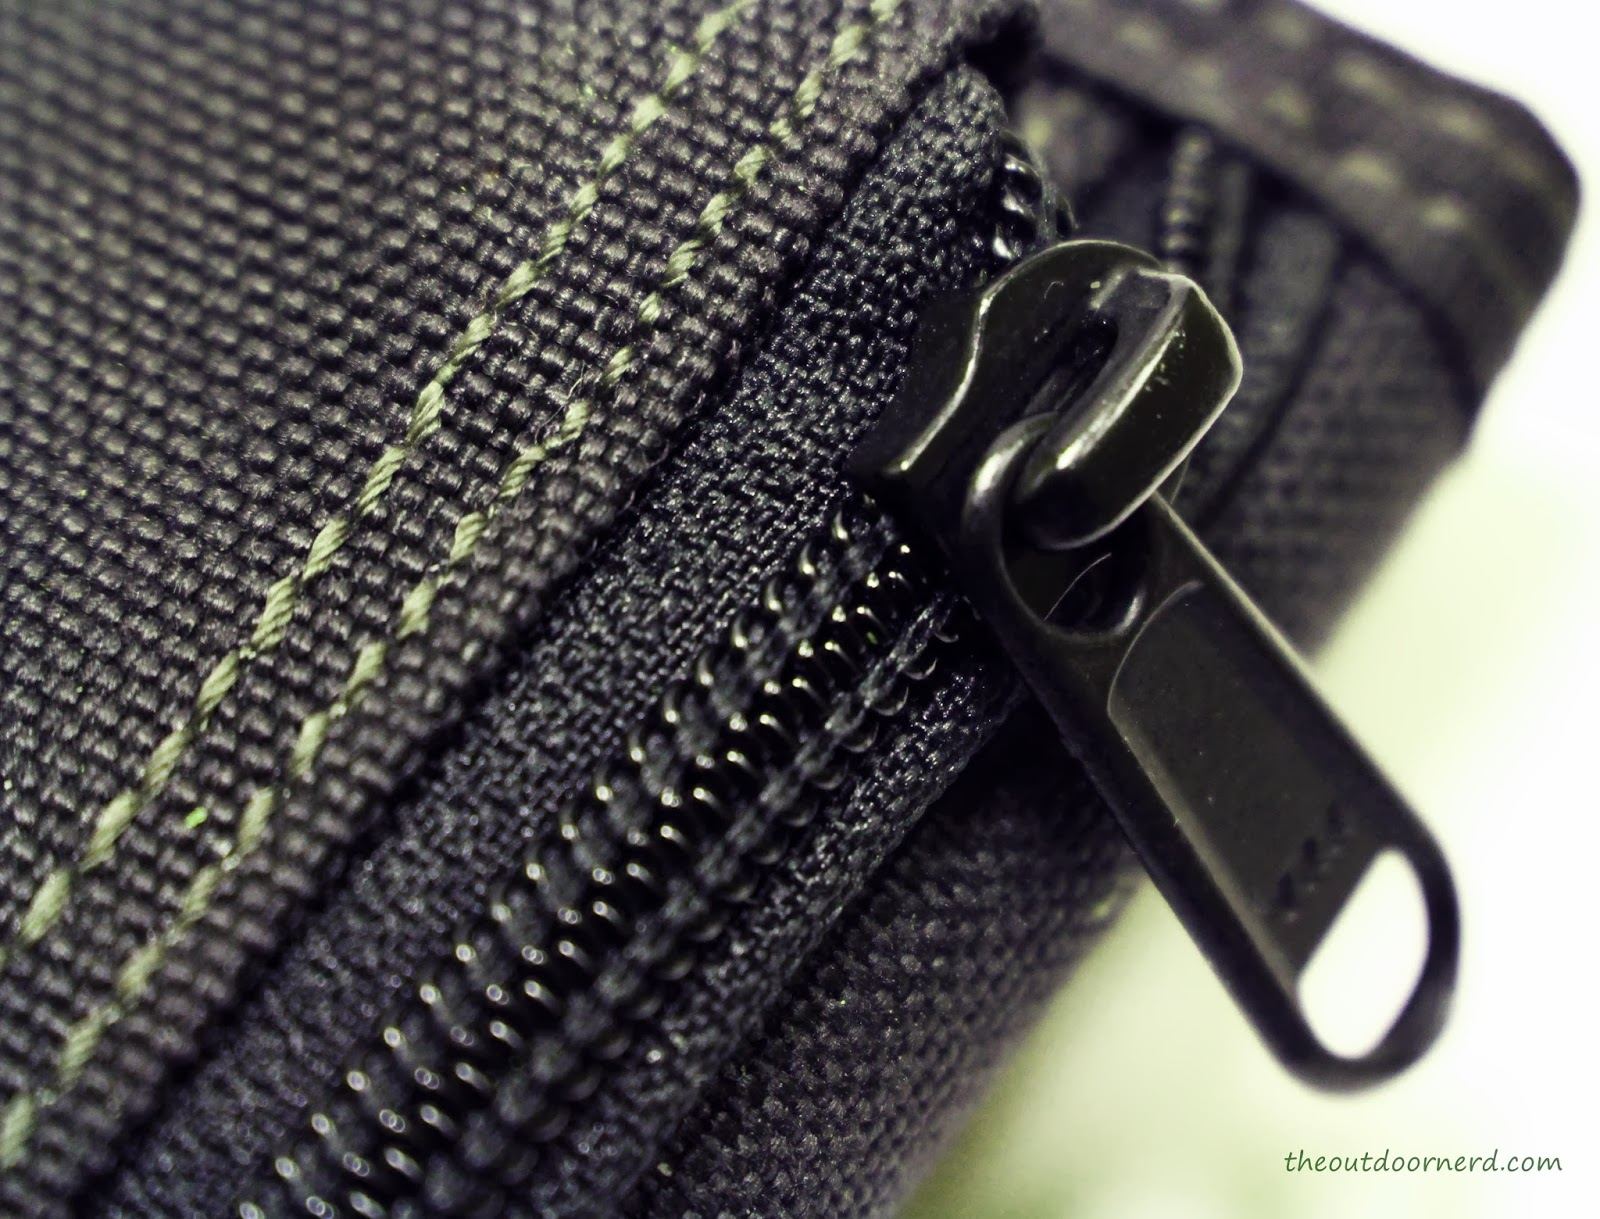 Maxpedition C.M.C Wallet - Closeup Of Coin Purse Zipper